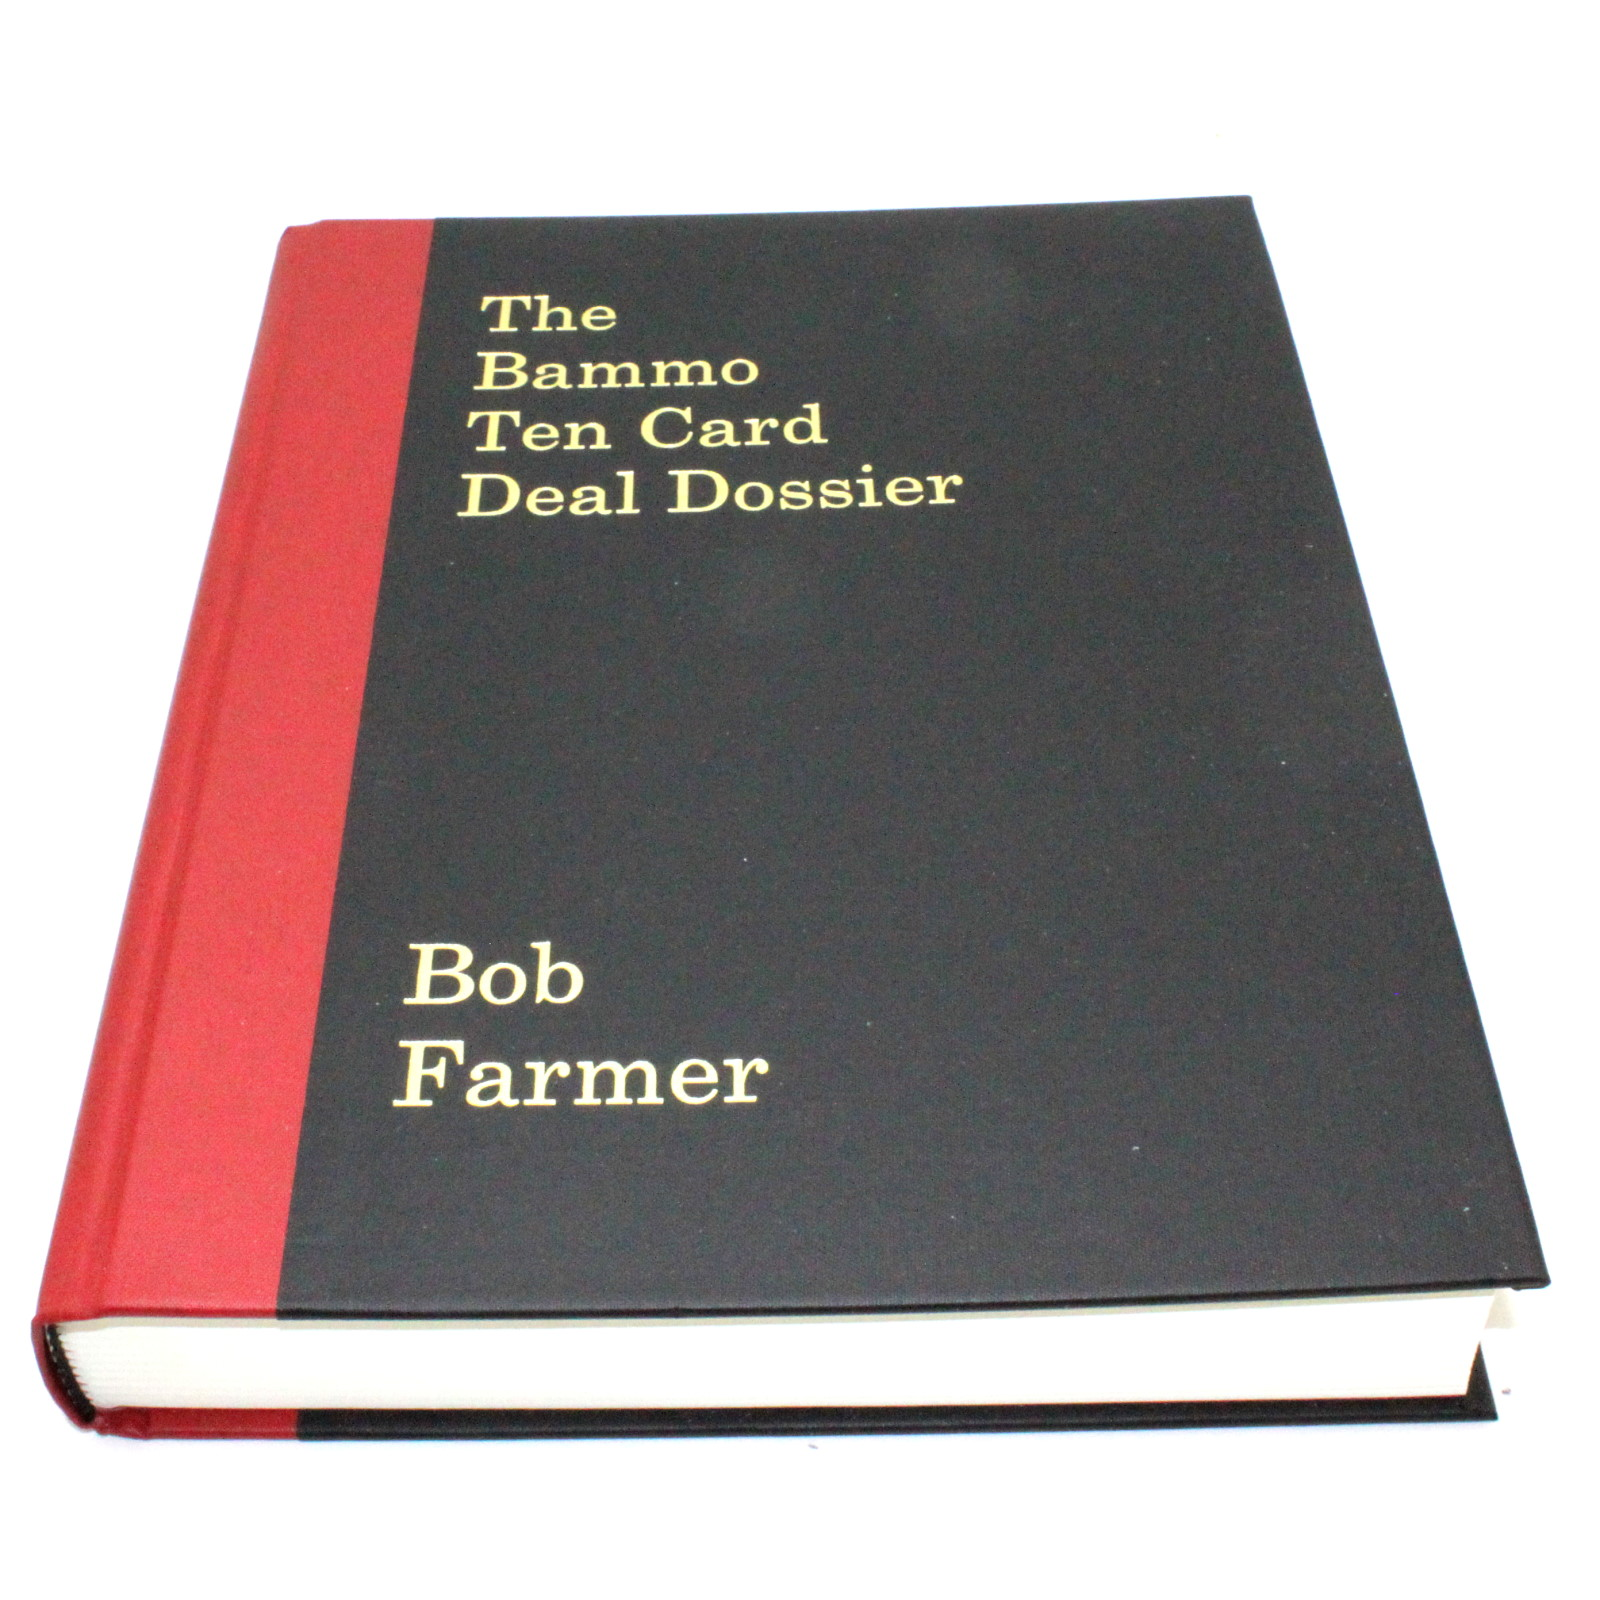 The Bammo Ten Card Deal Dossier by Bob Farmer